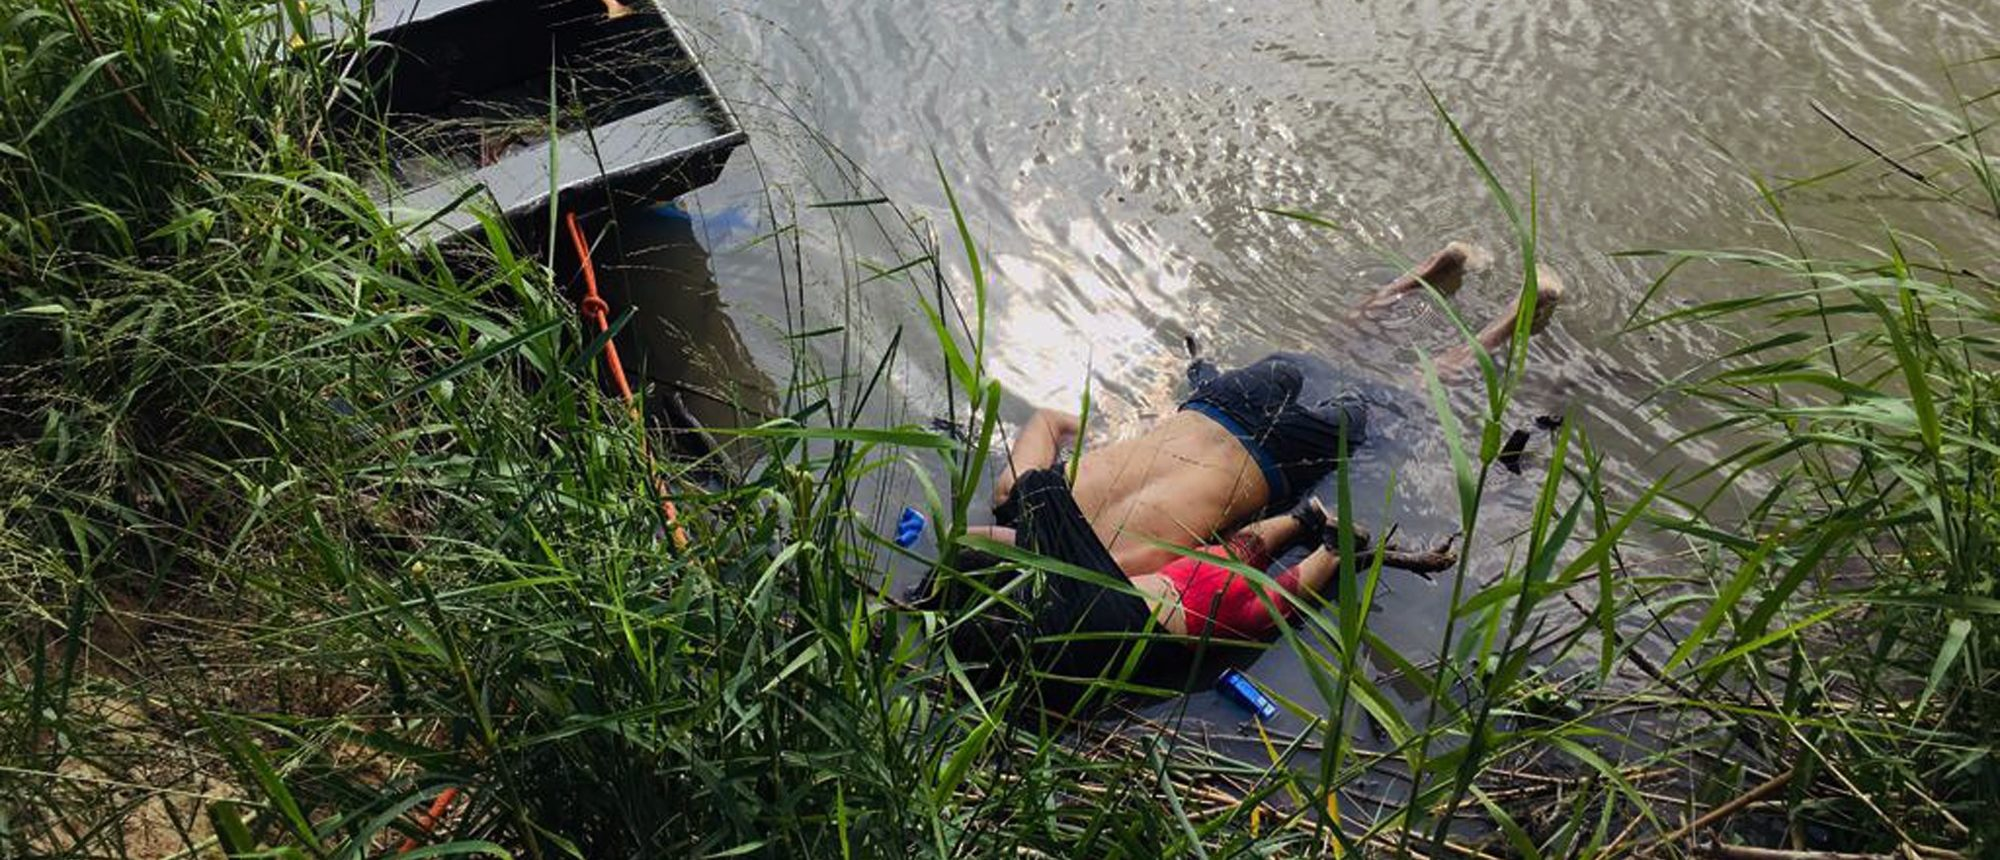 View of the bodies of Salvadoran migrant Oscar Martinez Ramirez and his daughter, who drowned while trying to cross the Rio Grande ... (Photo credit should read STR/AFP/Getty Images)